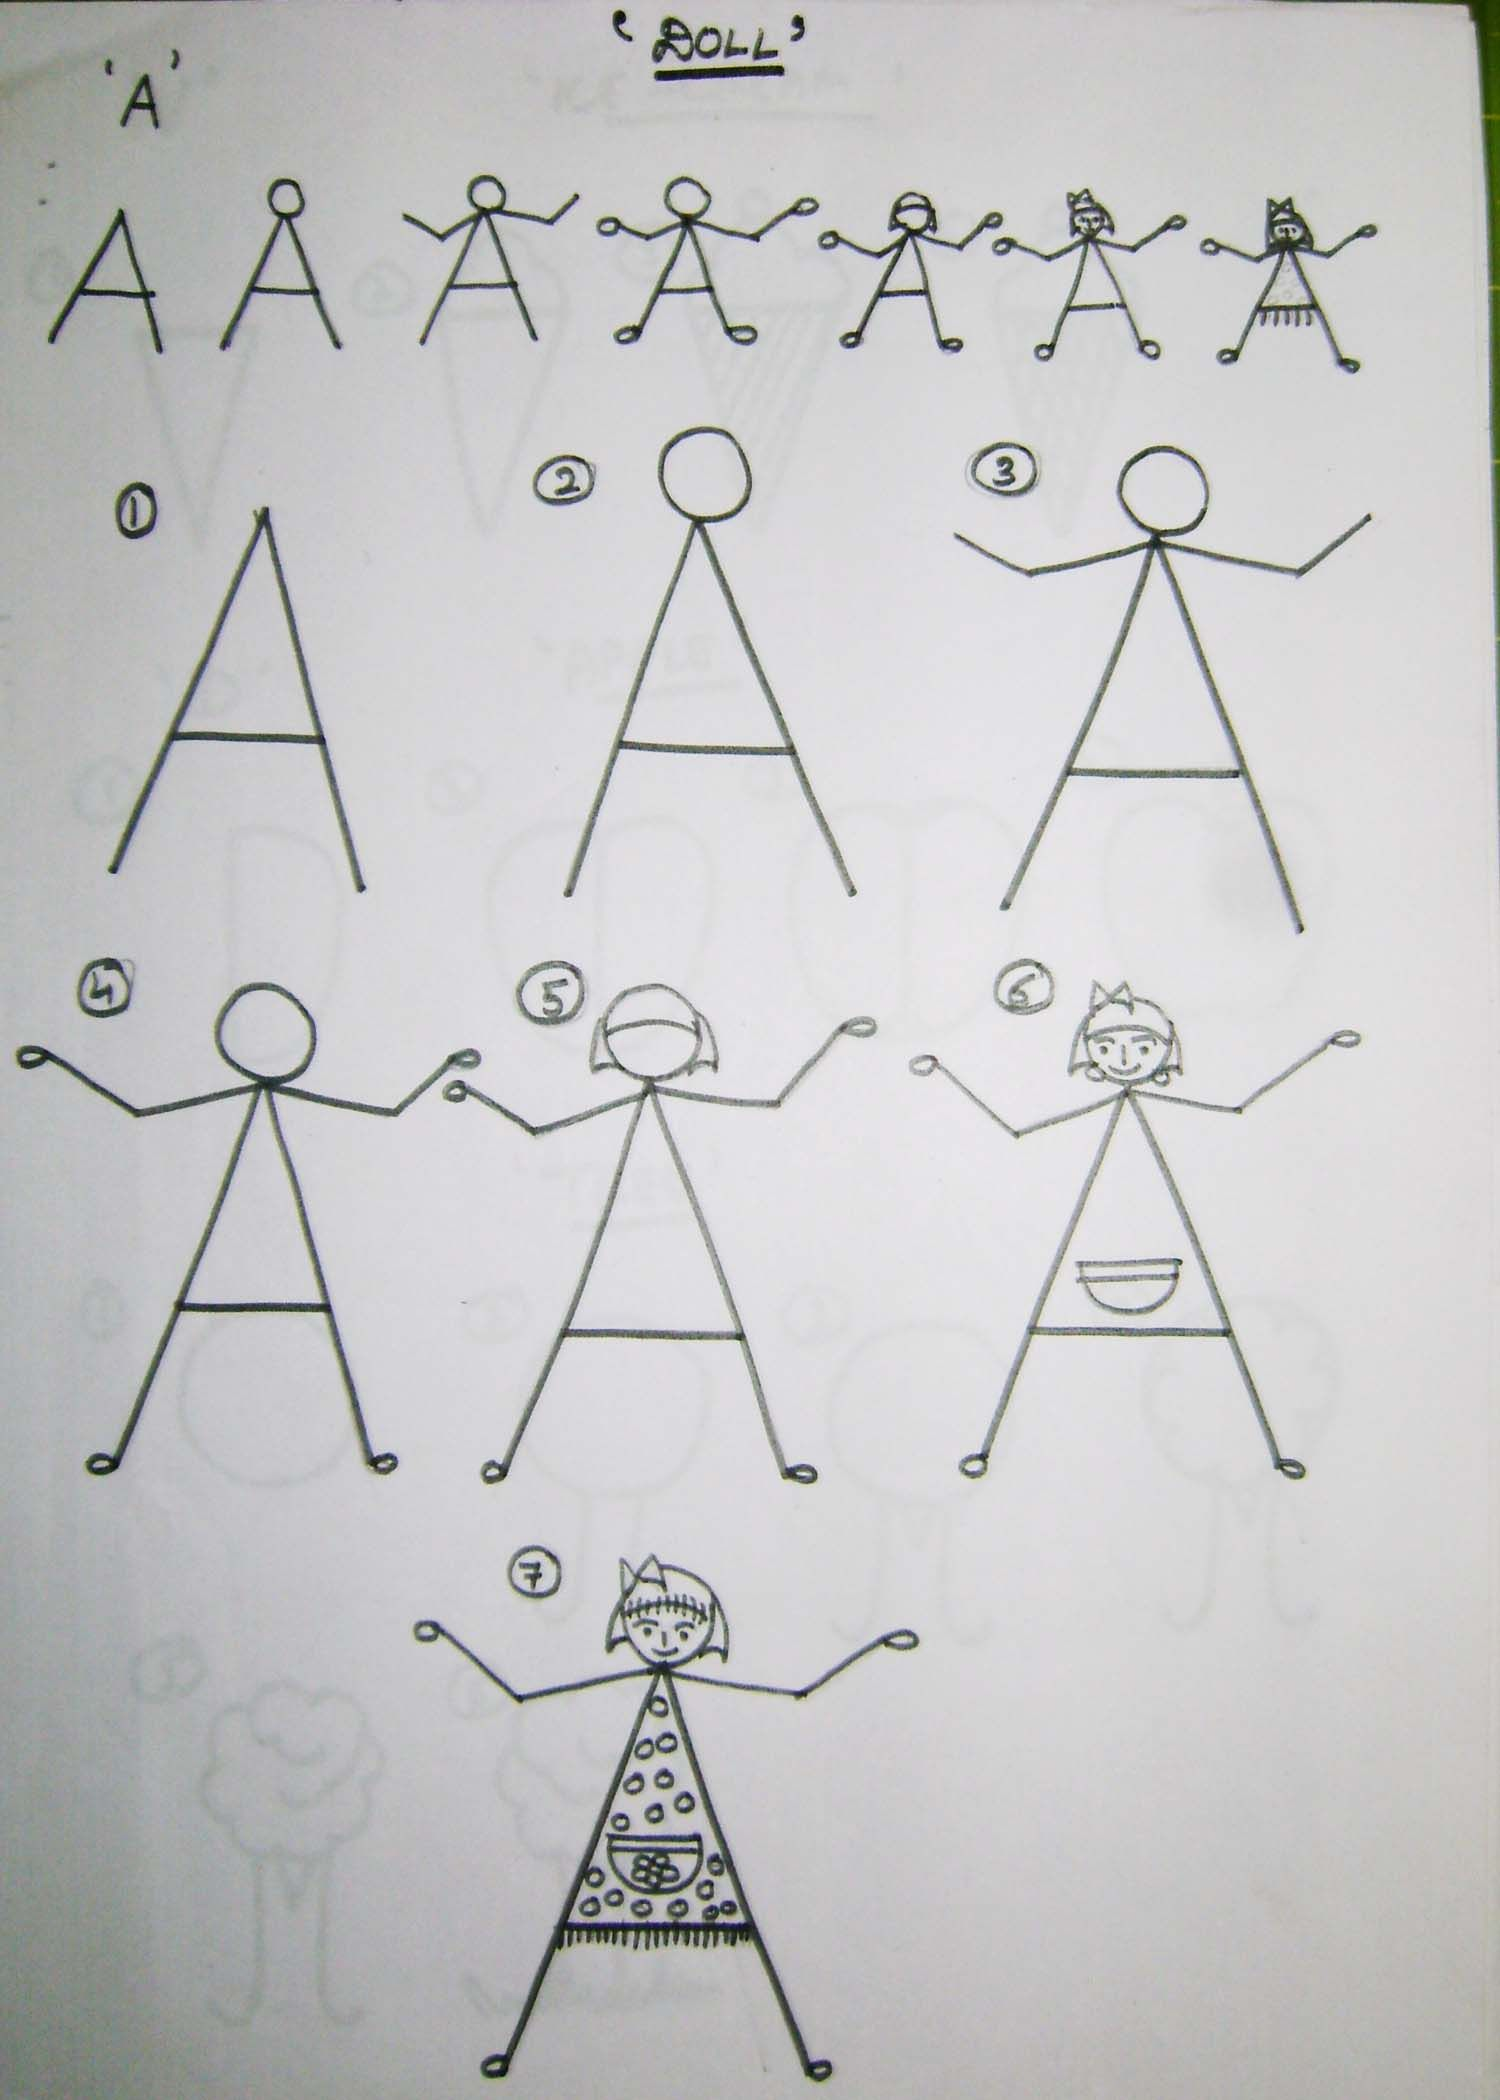 How to teach kids to draw using the alphabet doodles Teach me how to draw a flower